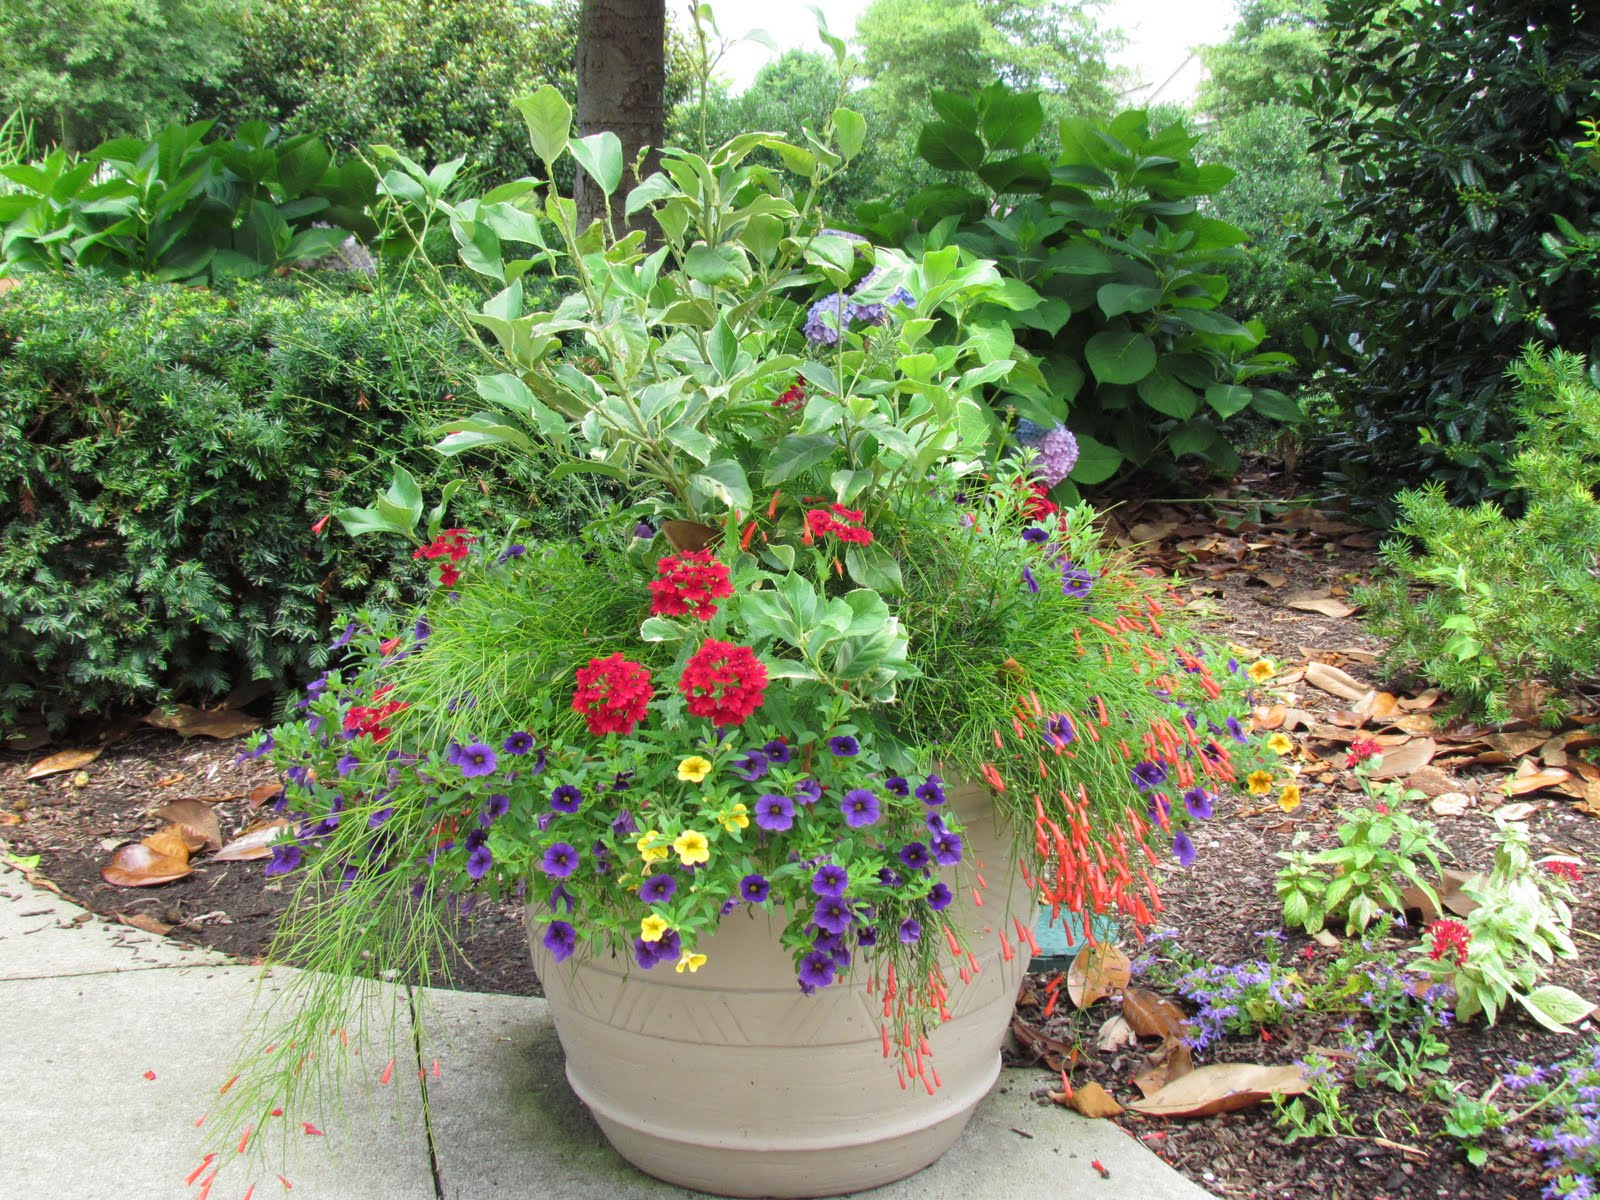 Bwisegardening day 365 of 365 days of container gardening for Garden planter ideas